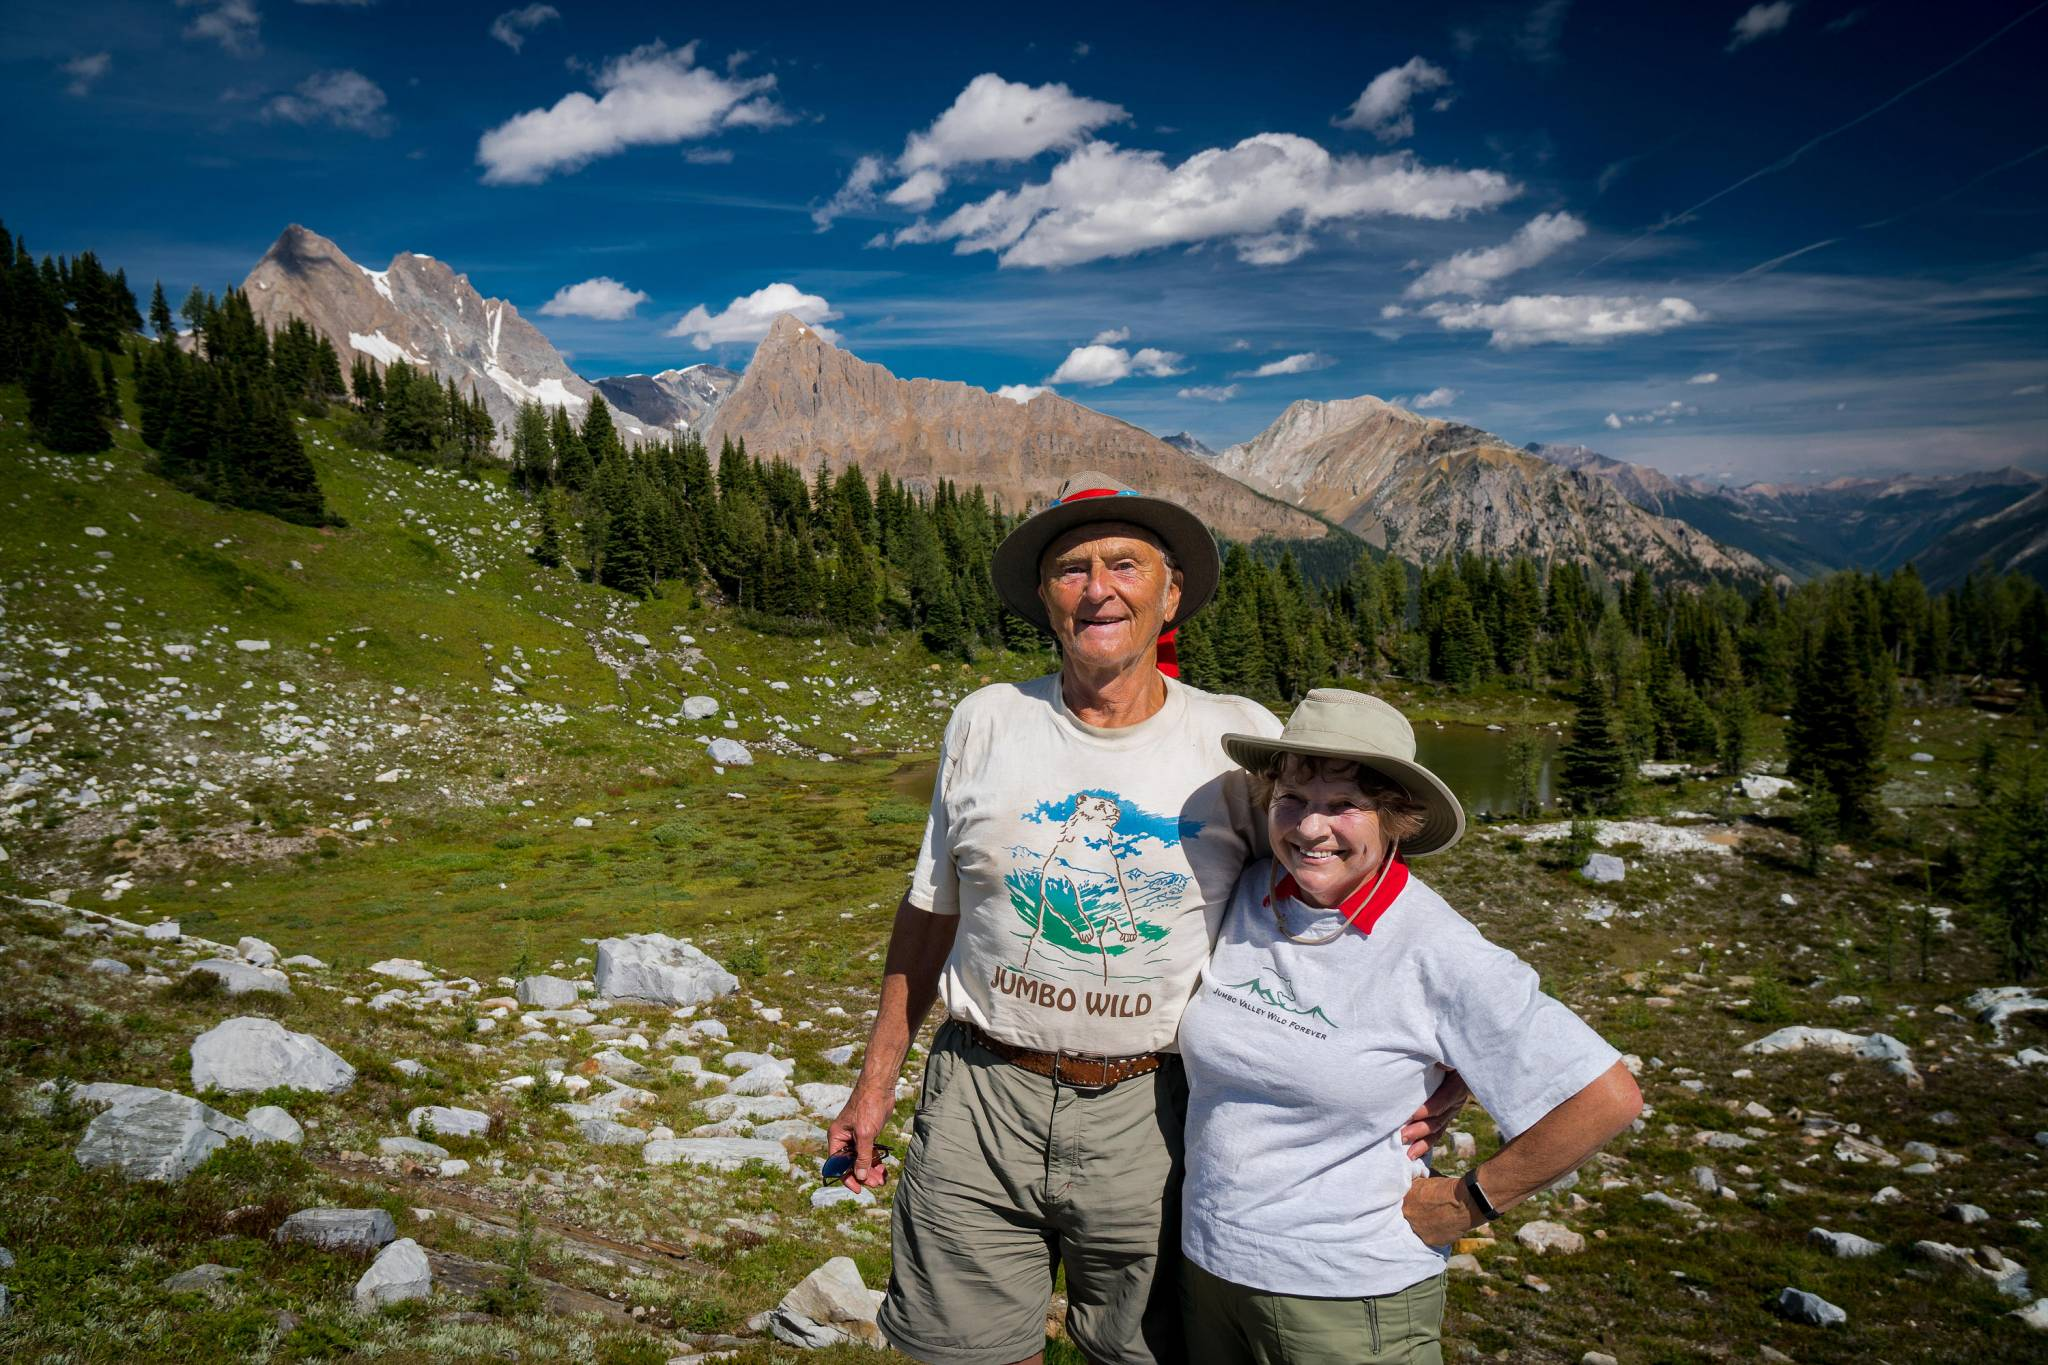 Long-time Jumbo Wild supporters Bob and Lorraine Campsall.